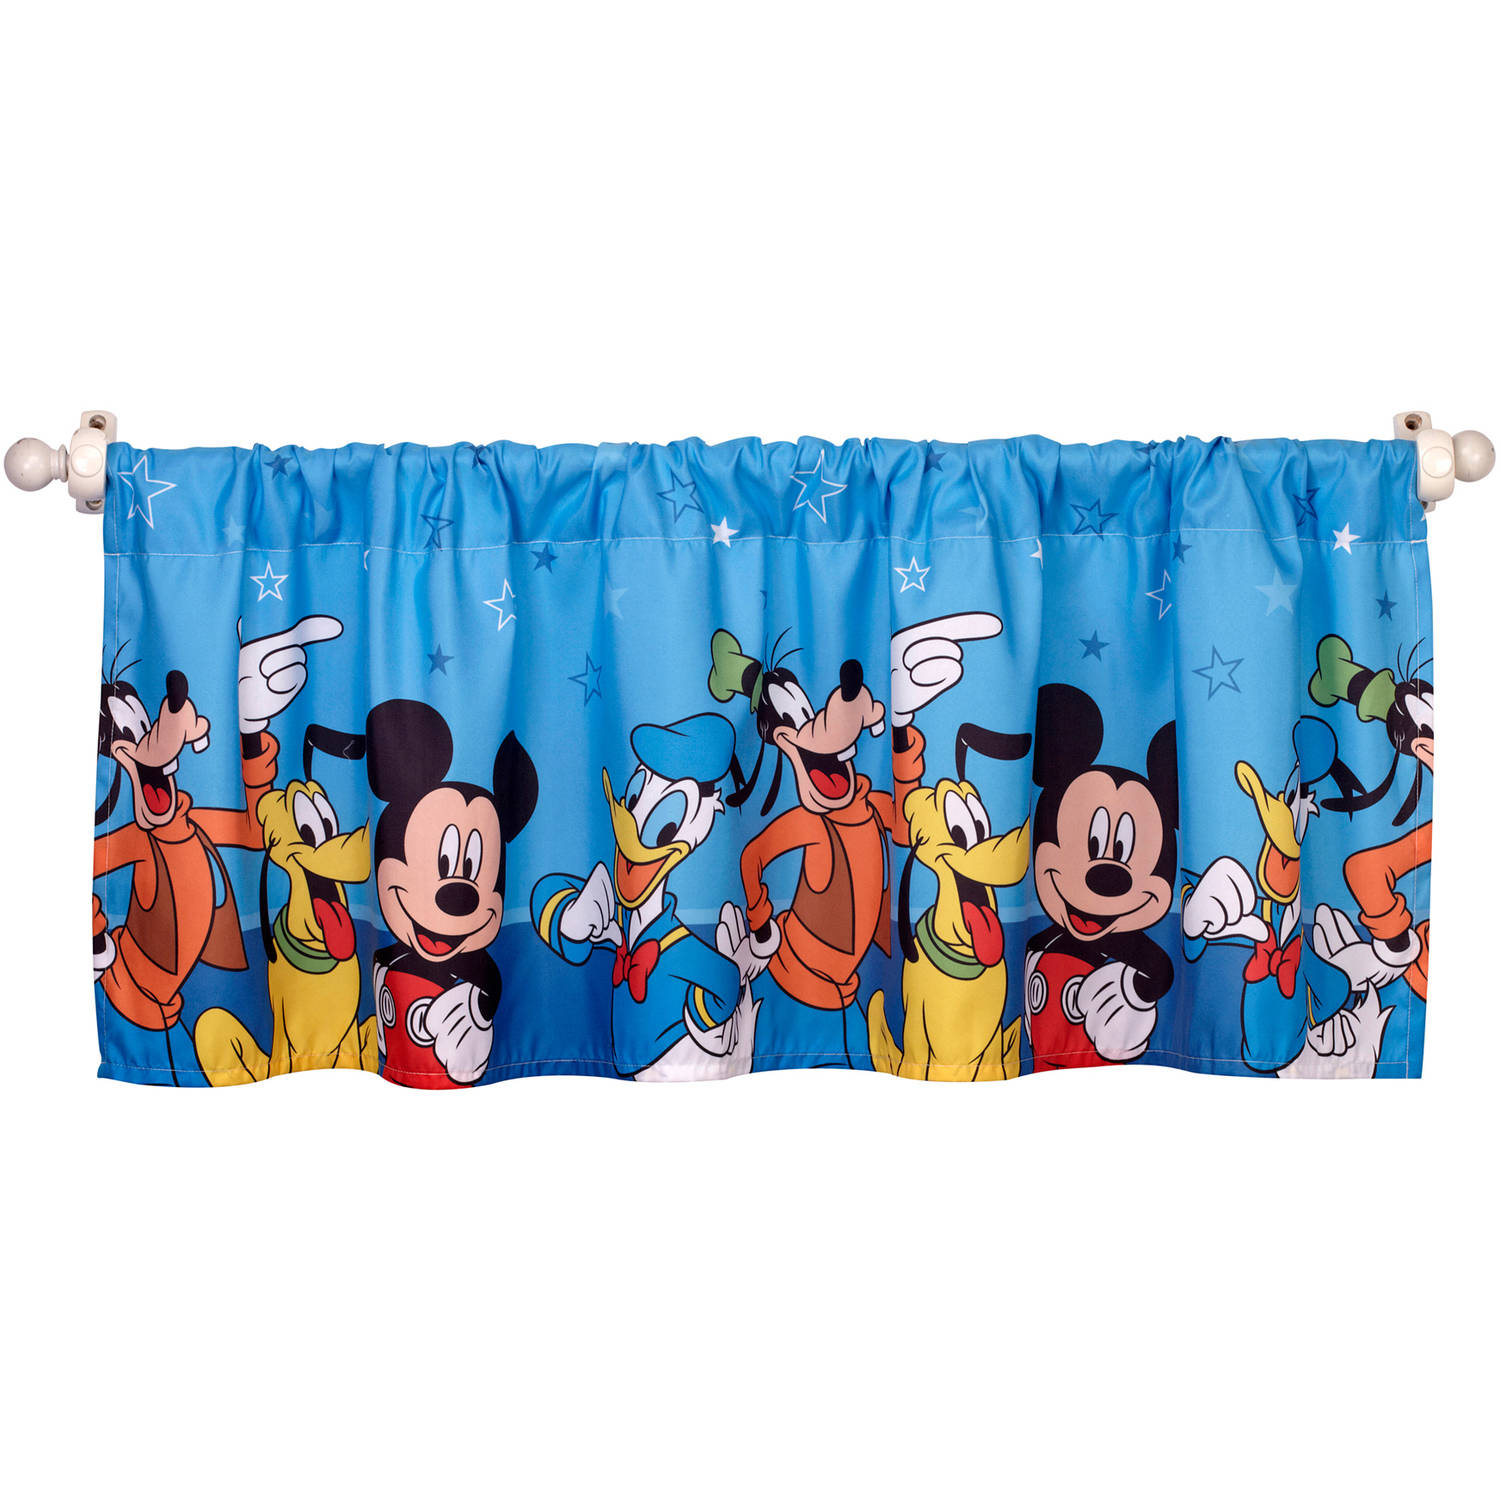 Merveilleux Disney Mickey Mouse Window Valance   Walmart.com